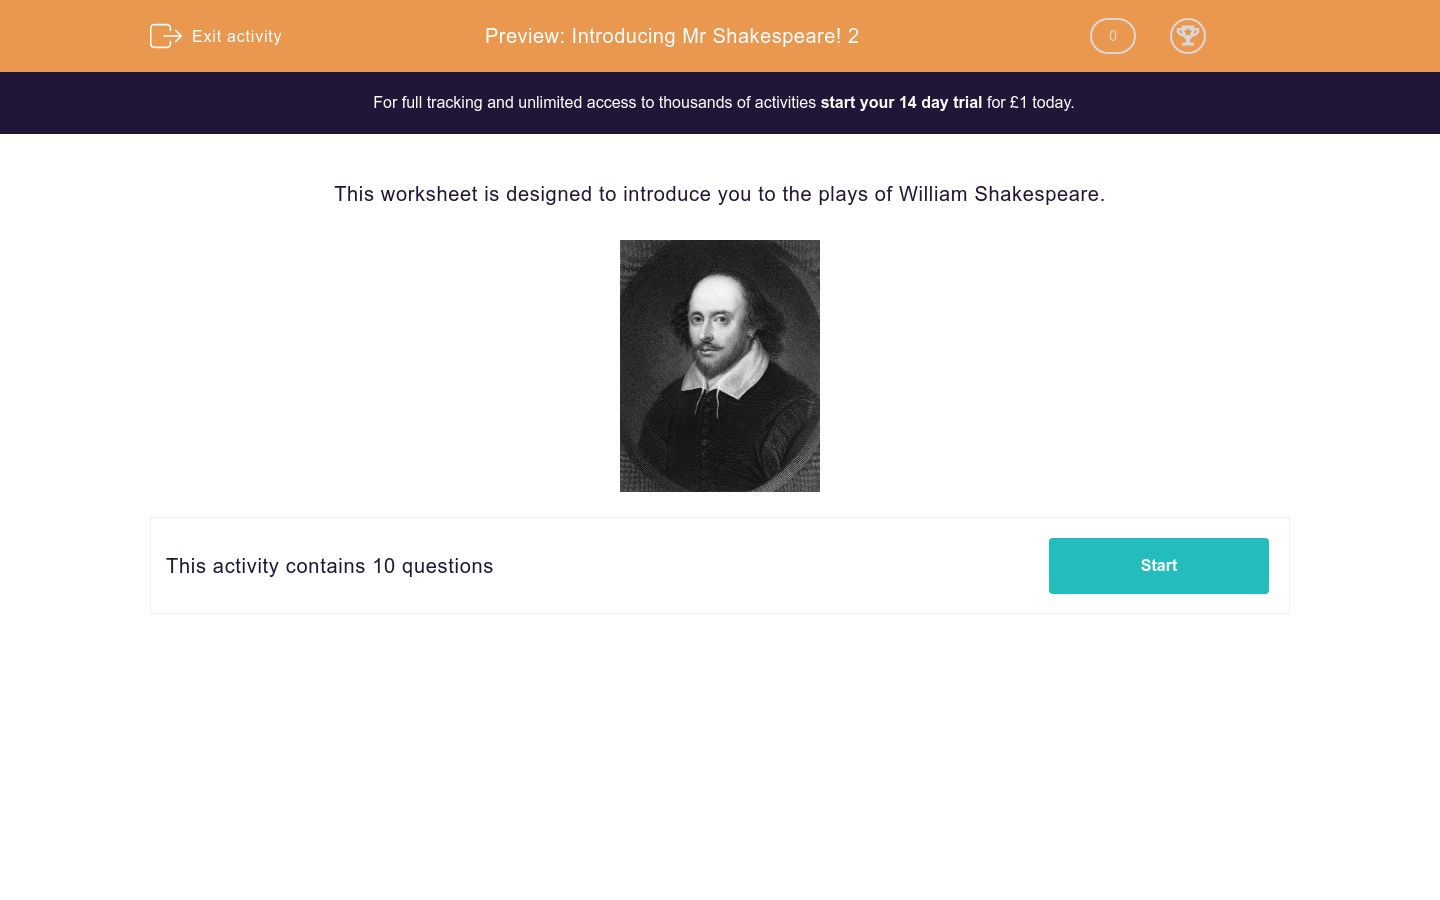 'Introducing Mr Shakespeare! 2' worksheet